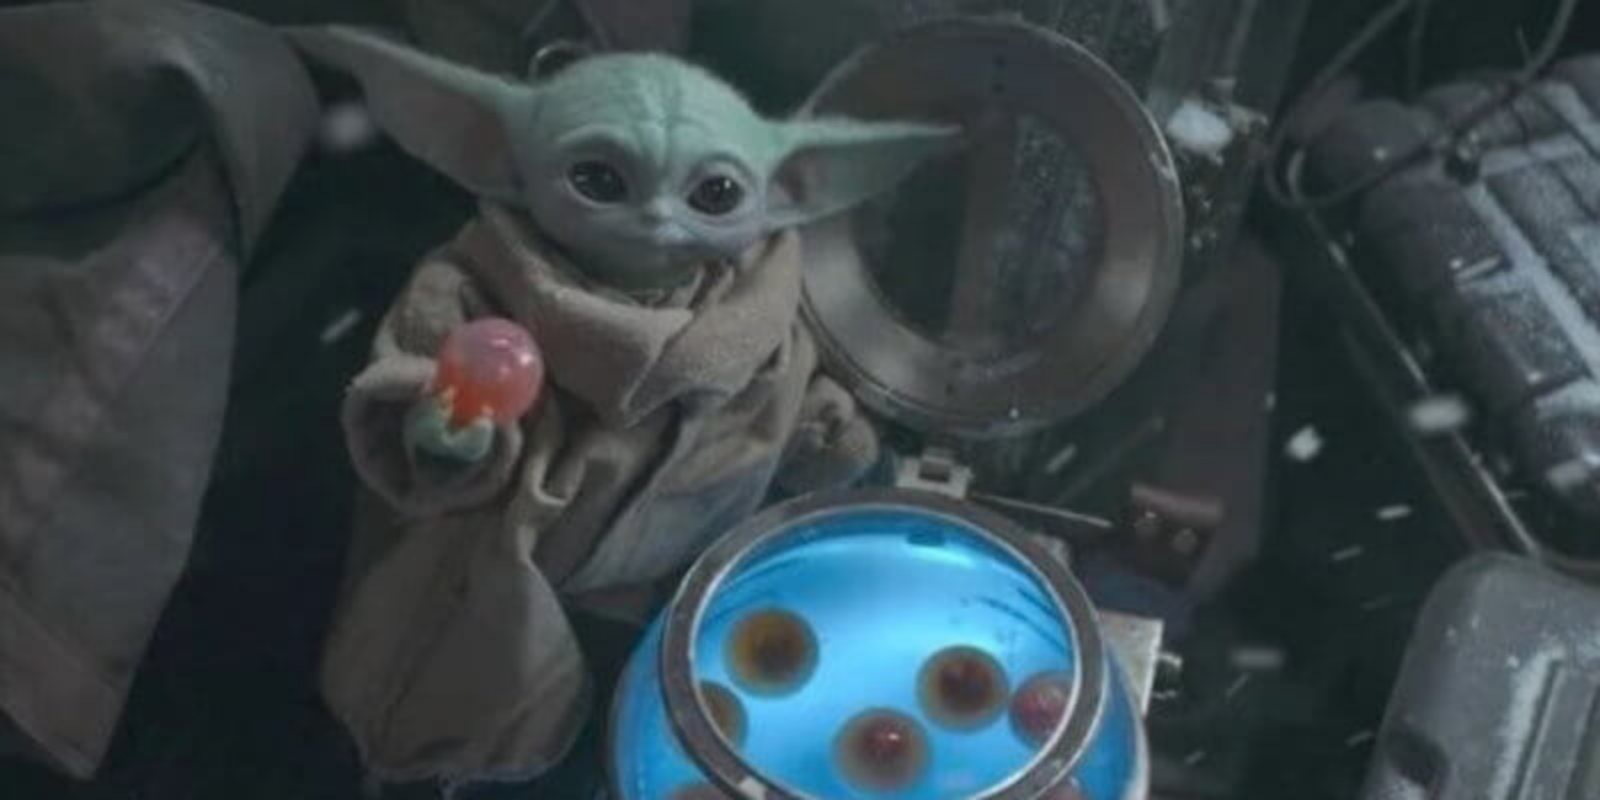 Baby Yoda's 'egg eating' causes liberal consternation